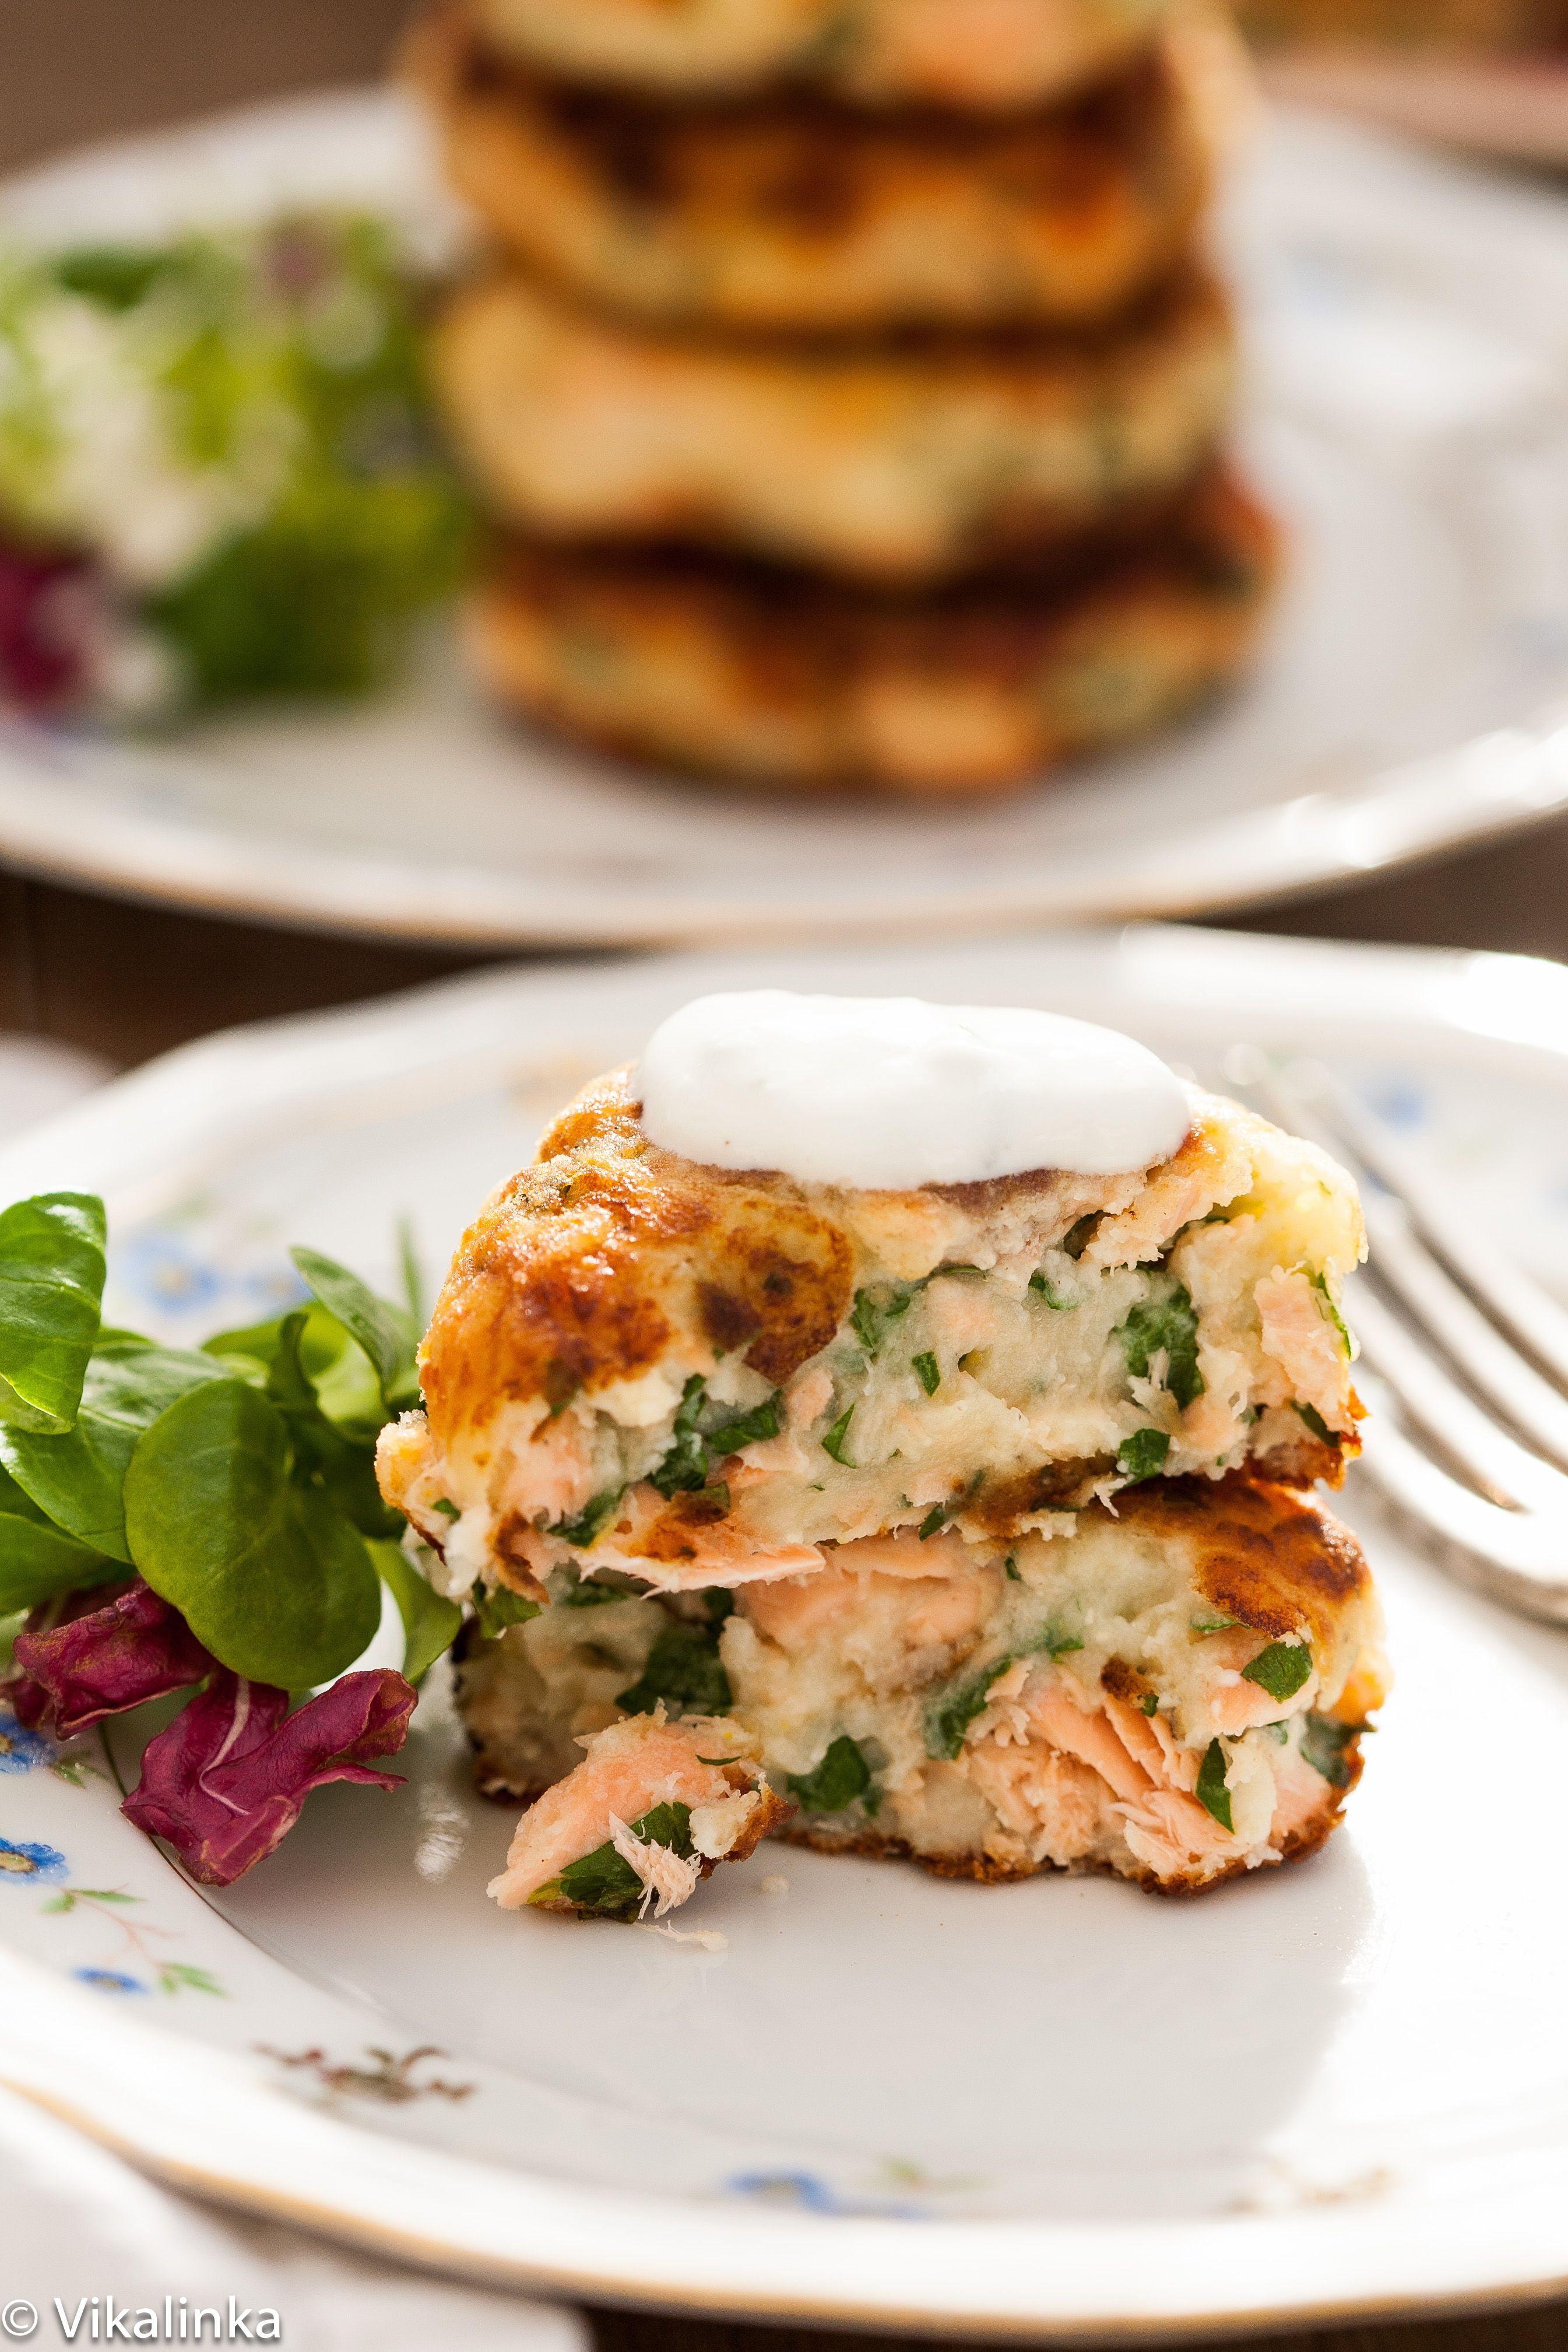 Salmon Cakes With Chive And Garlic Sauce These Cakes Are